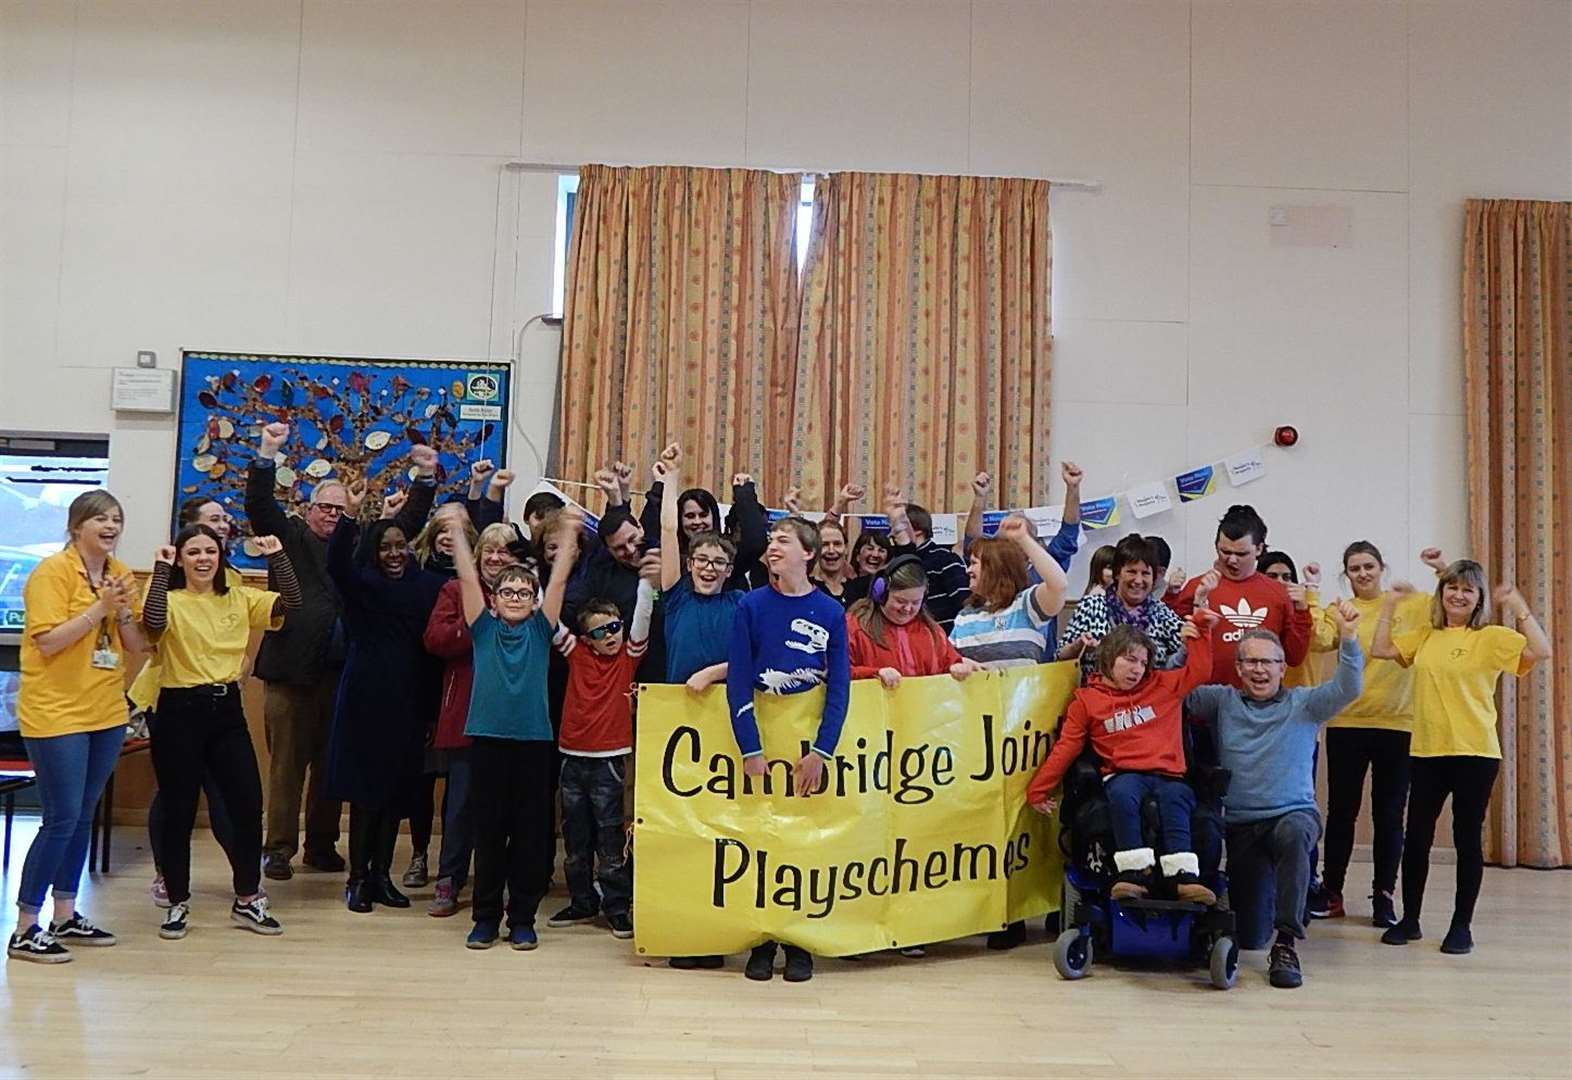 Public help could secure £40,000 for playscheme